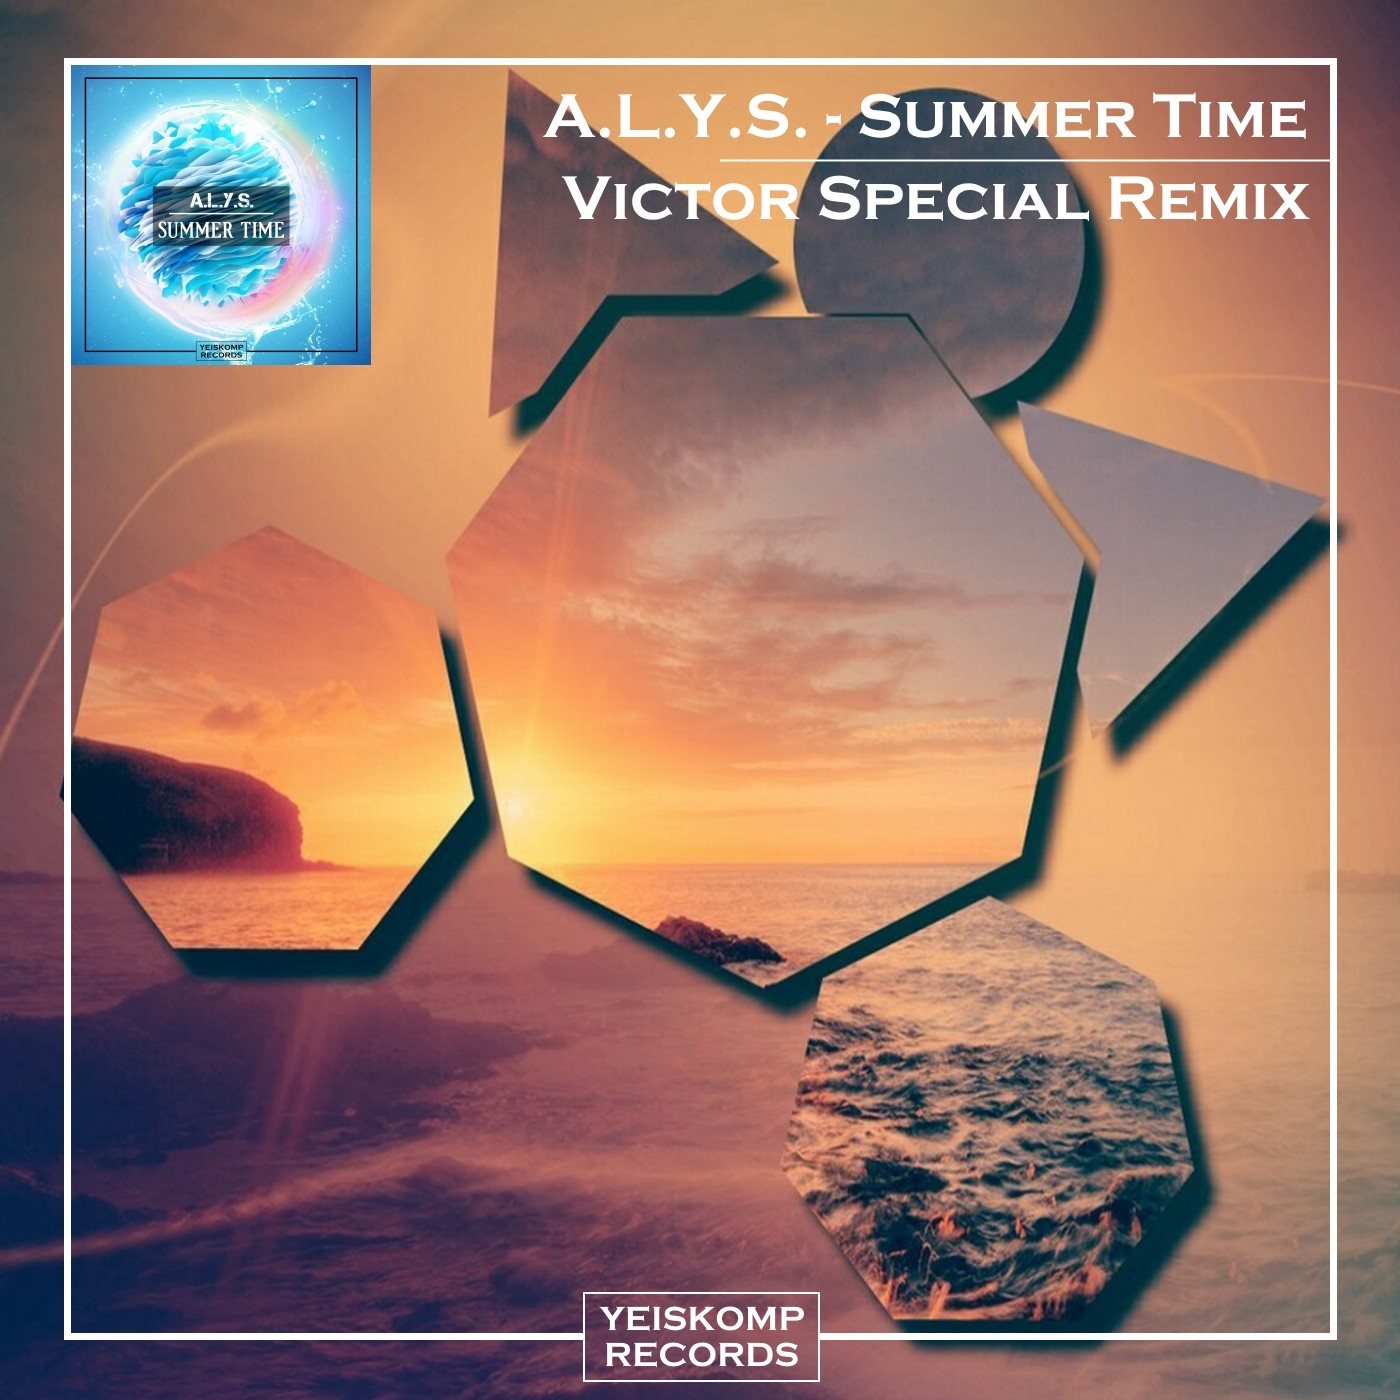 A.L.Y.S. - Summer Time (Victor Special Intro Remix)